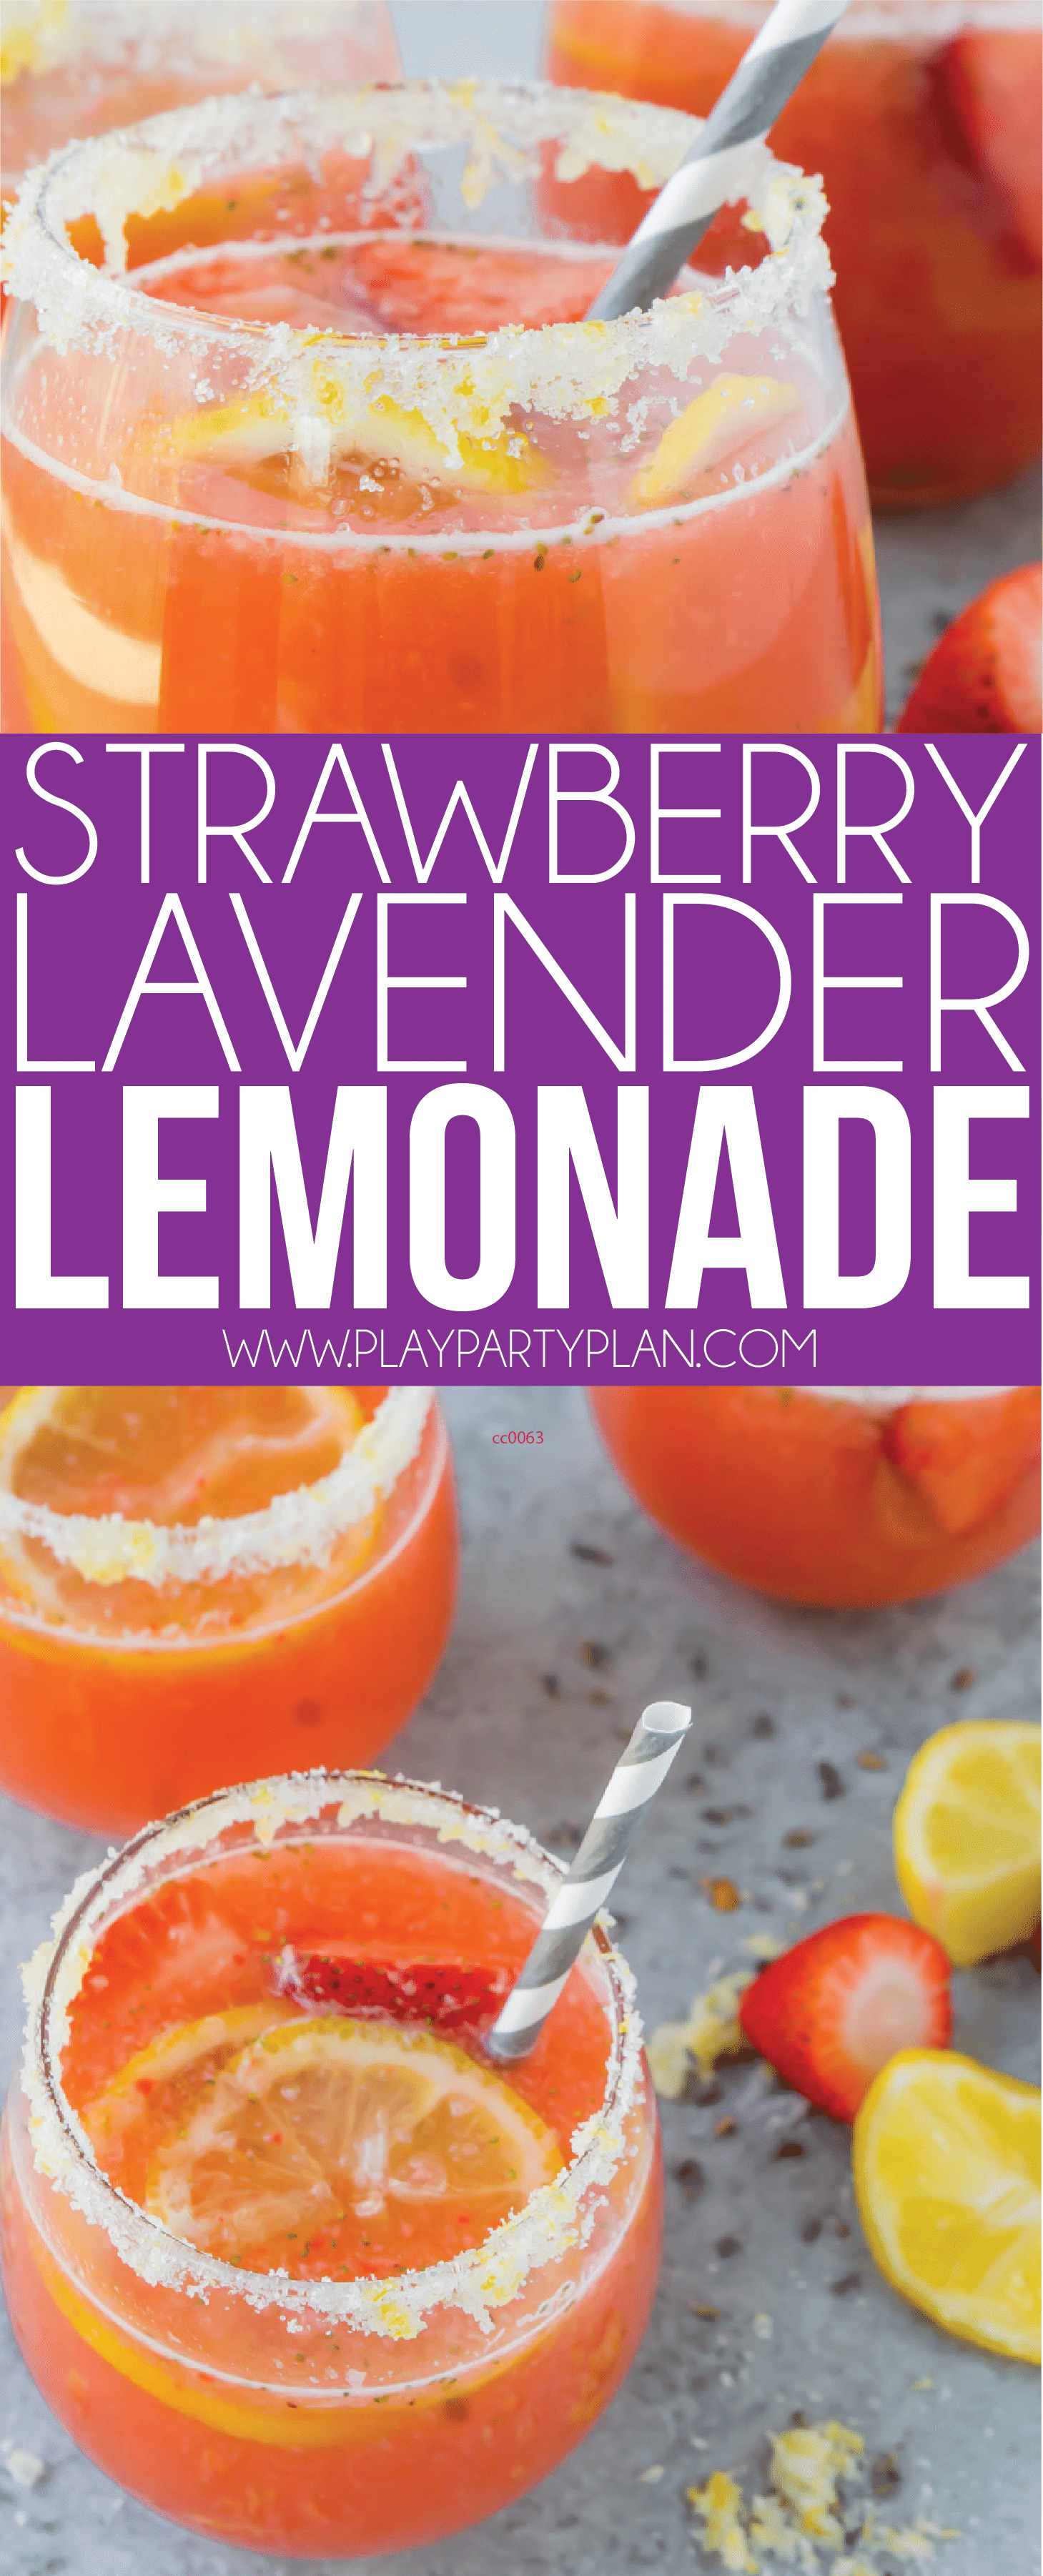 The best strawberry lavender lemonade recipe - great for fans of lavender lemonade or just regular strawberry lemonade! Perfect for baby showers, bridal showers, and any party! via @playpartyplan